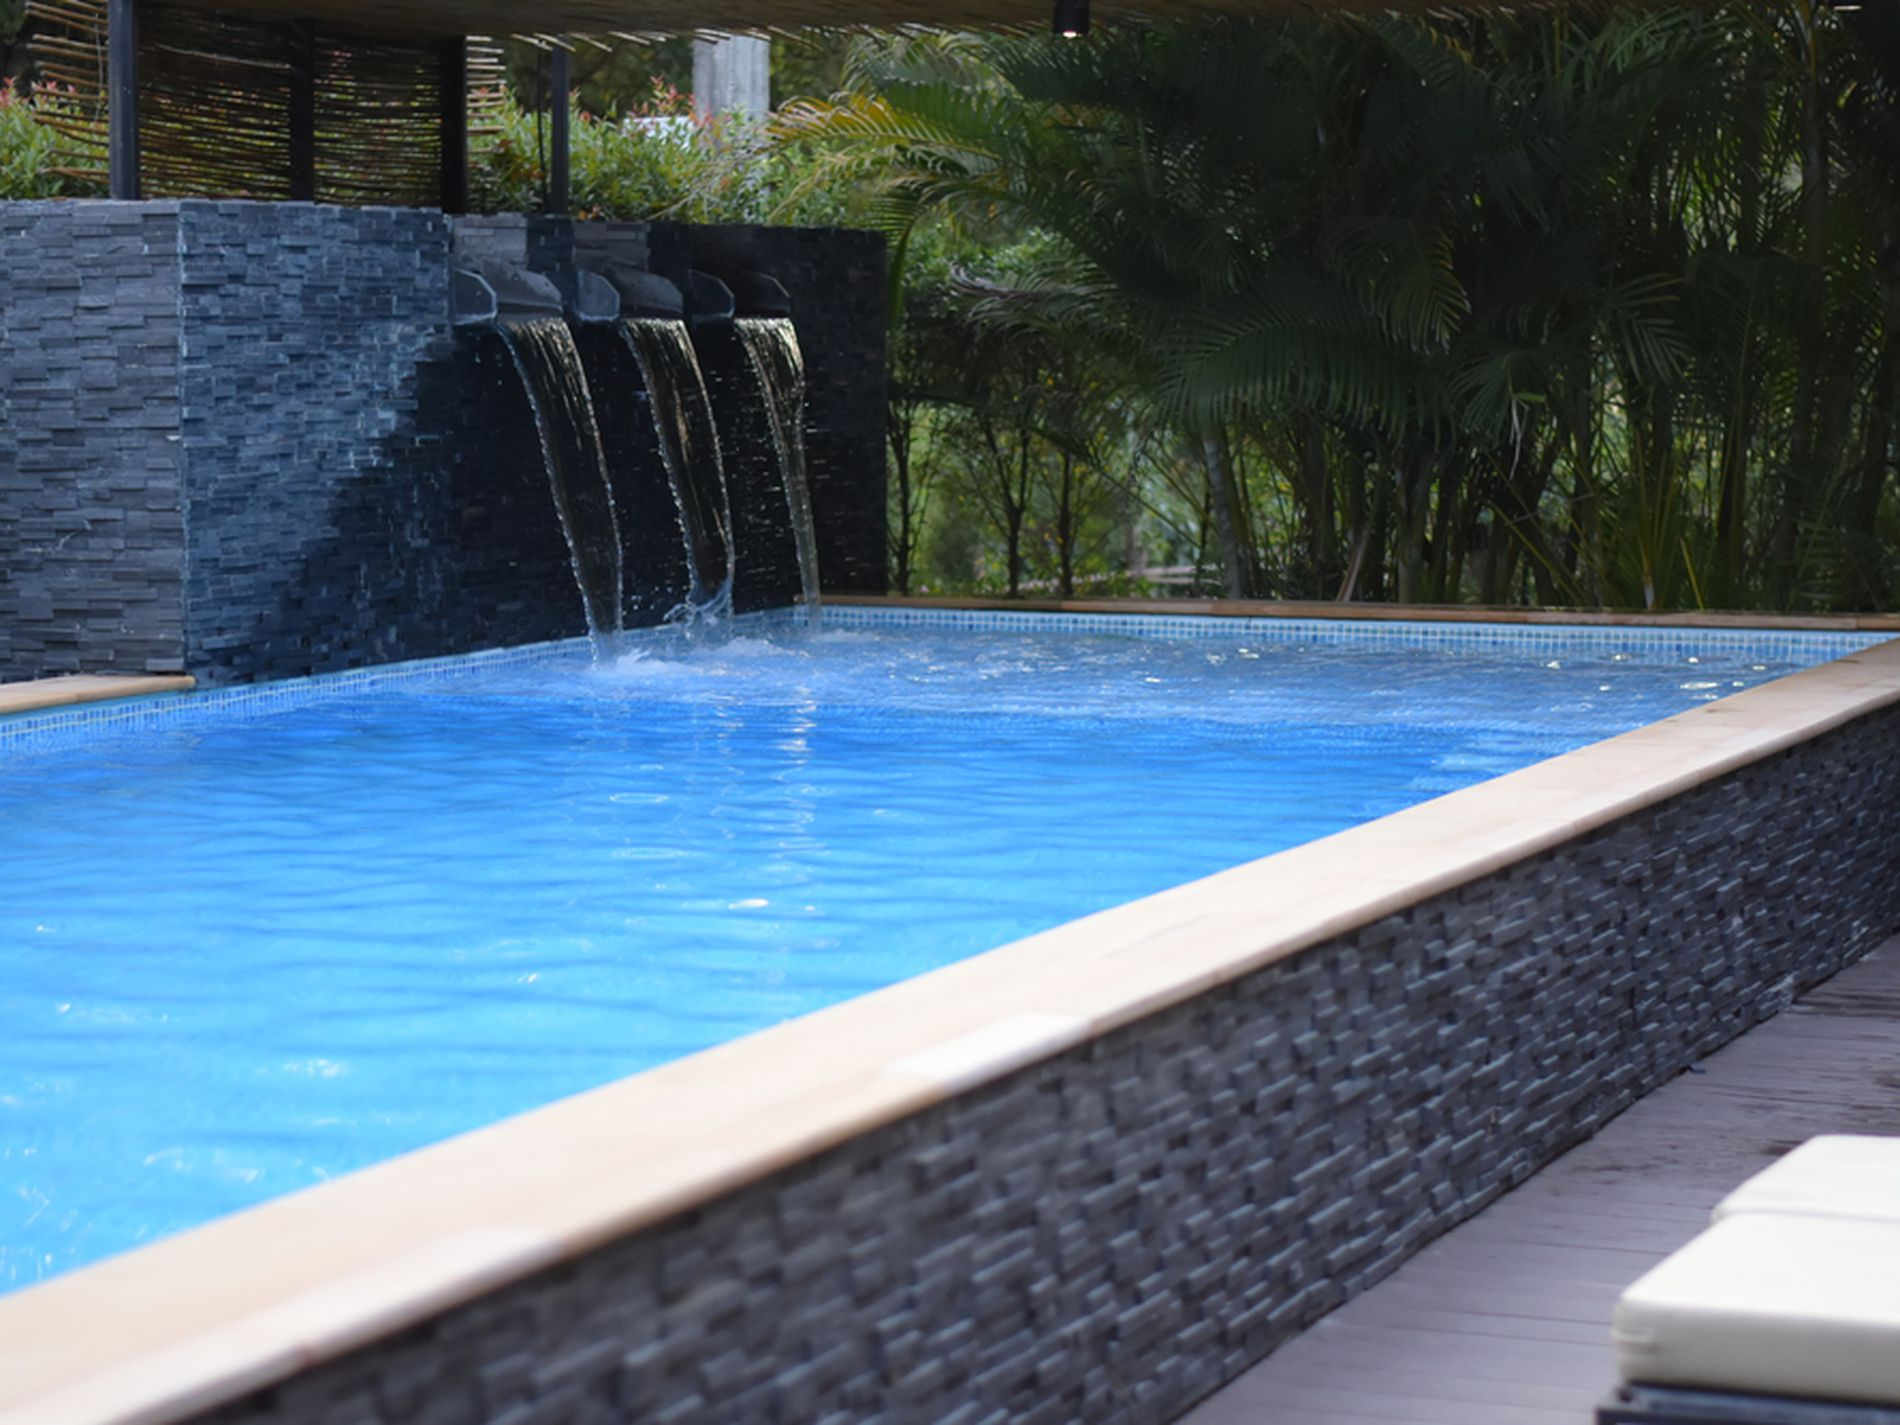 Pool and Spa Retail and Service Business For Sale